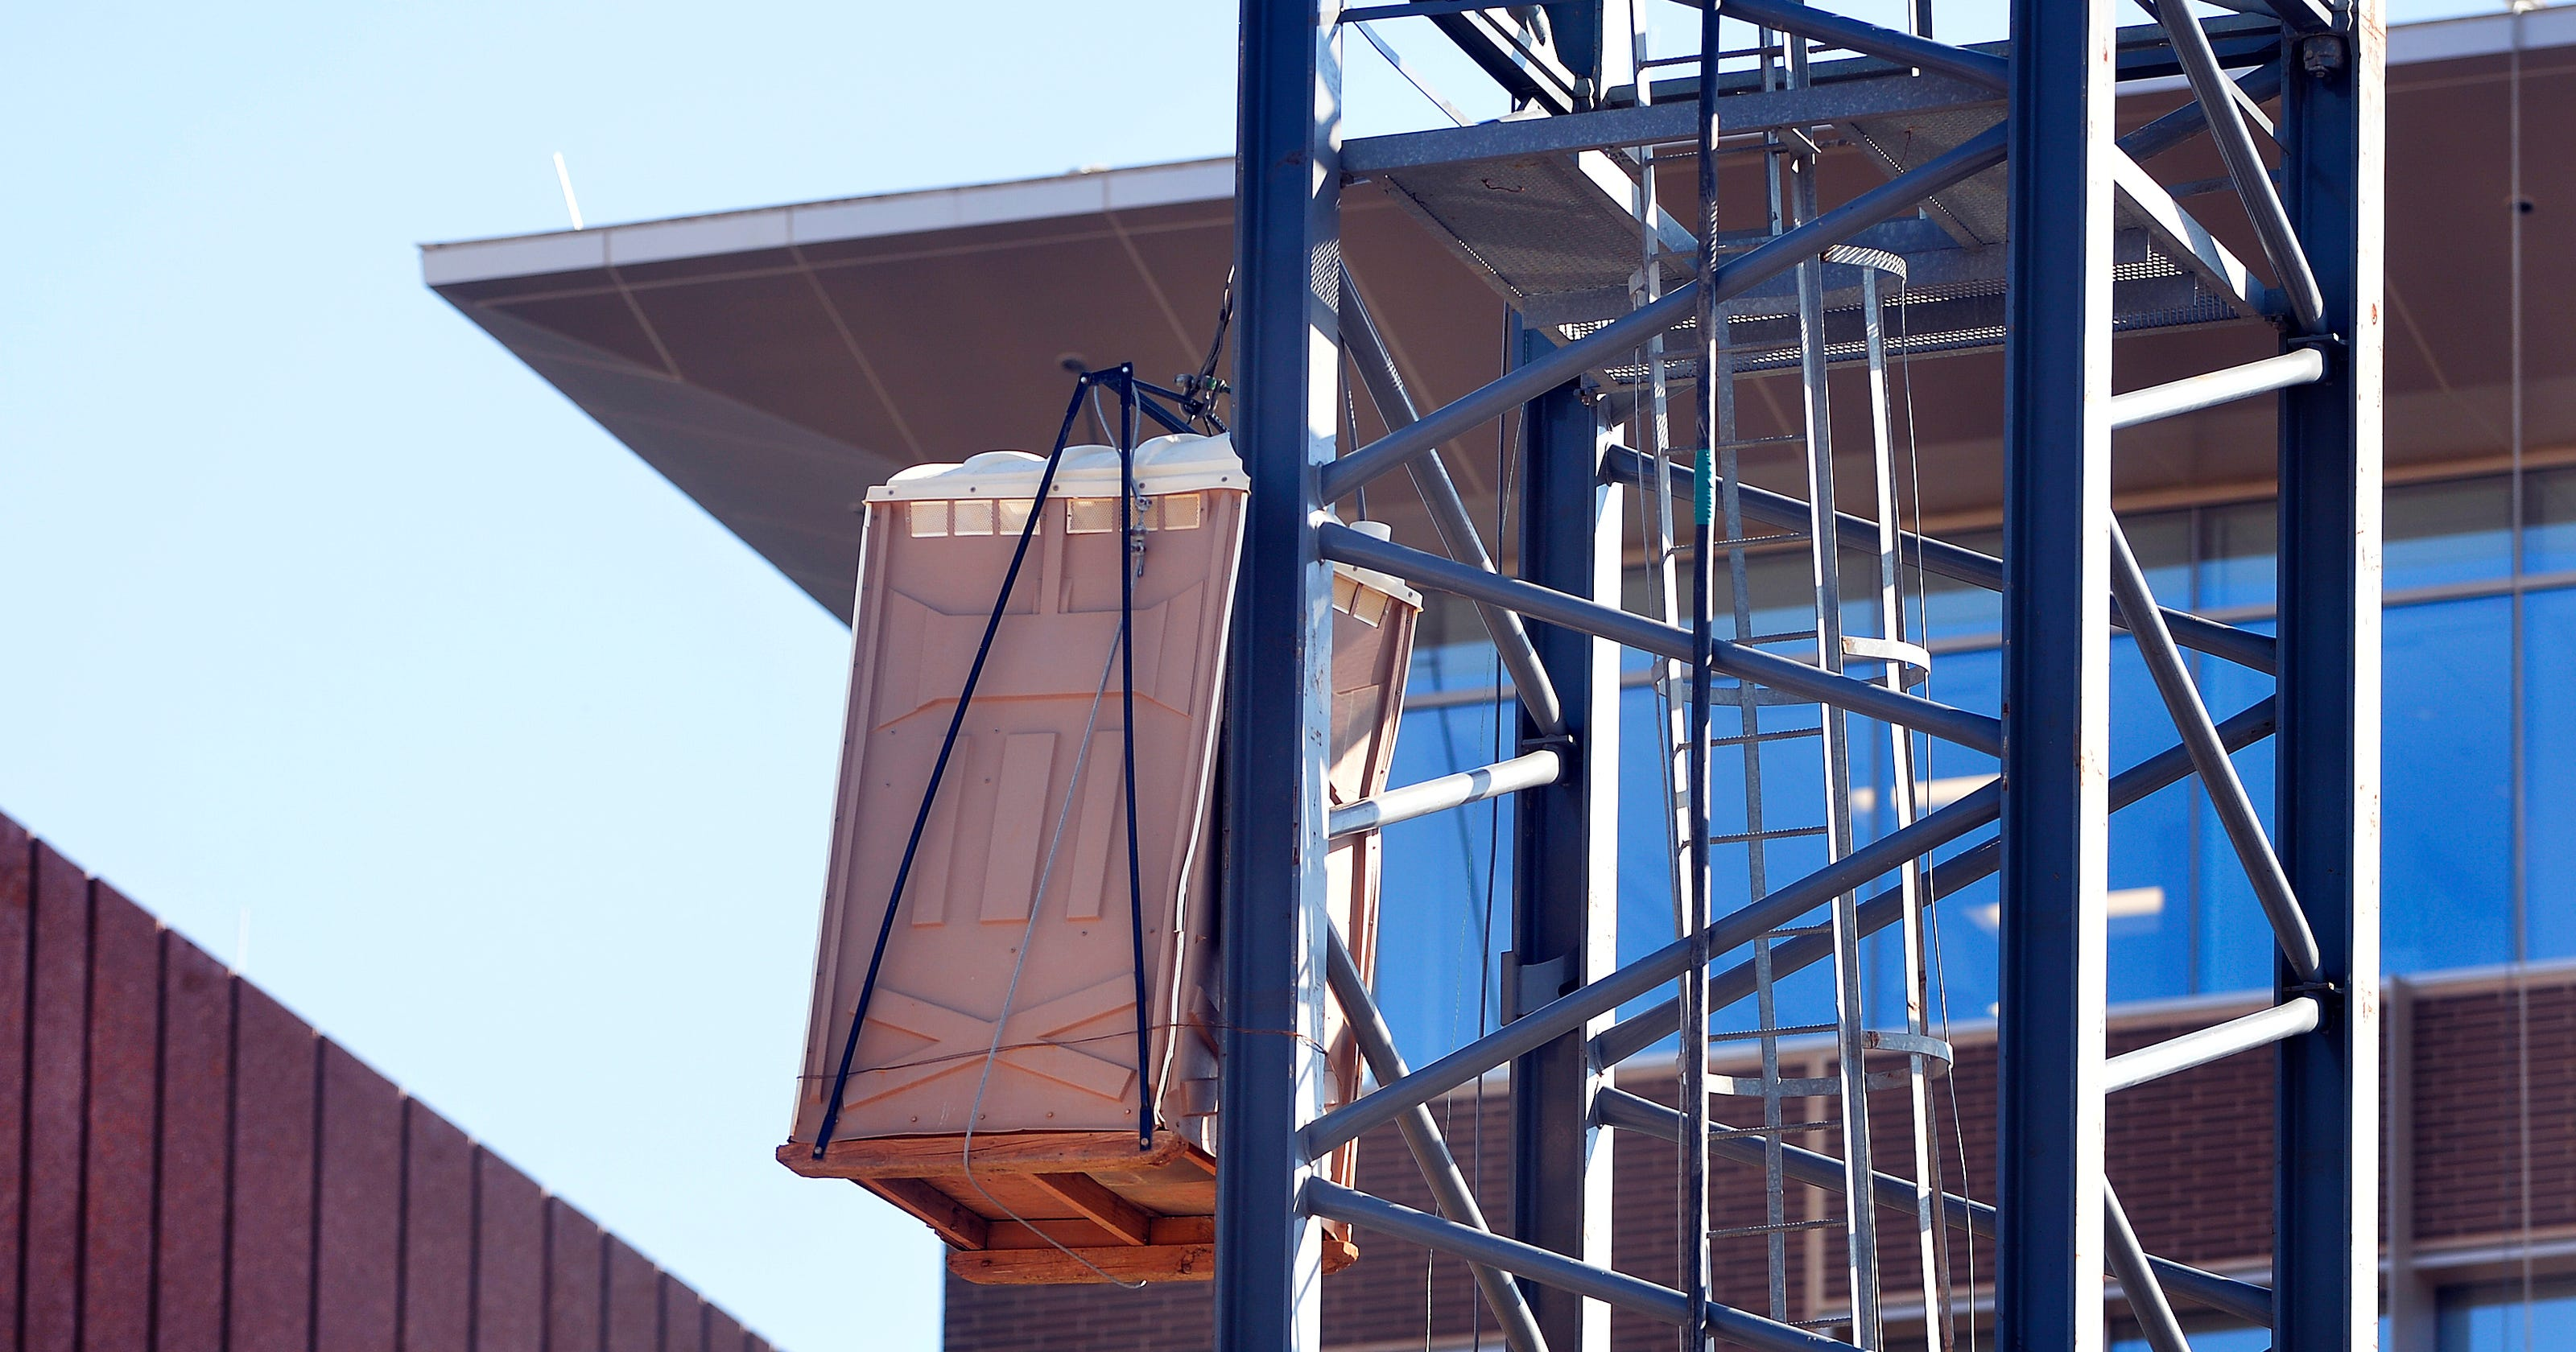 Q&Amy: Why is there a portable toilet hanging from a crane?